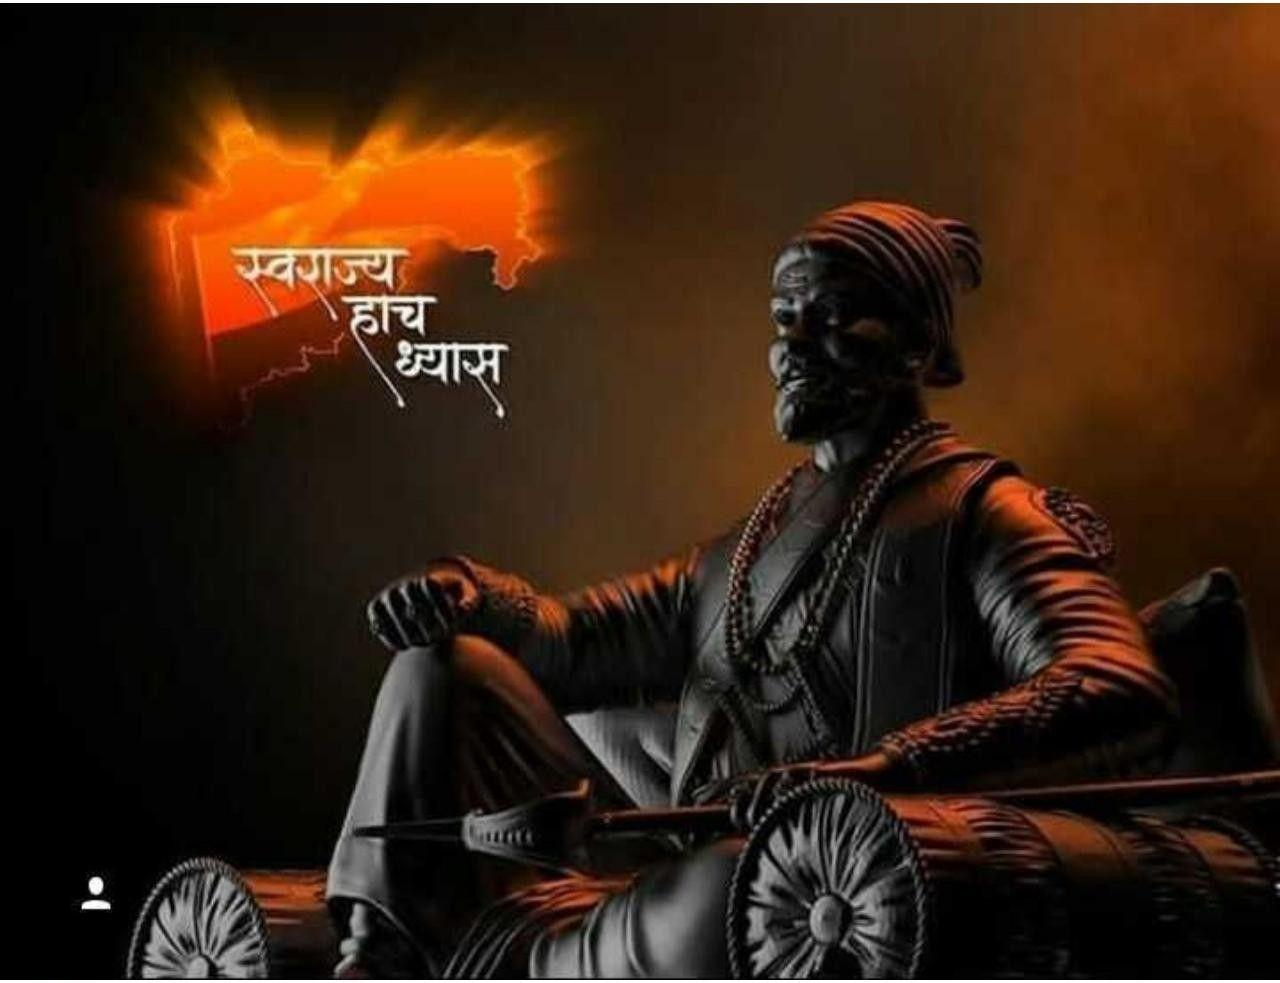 shivaji maharaj hd desktop wallpapers wallpaper cave